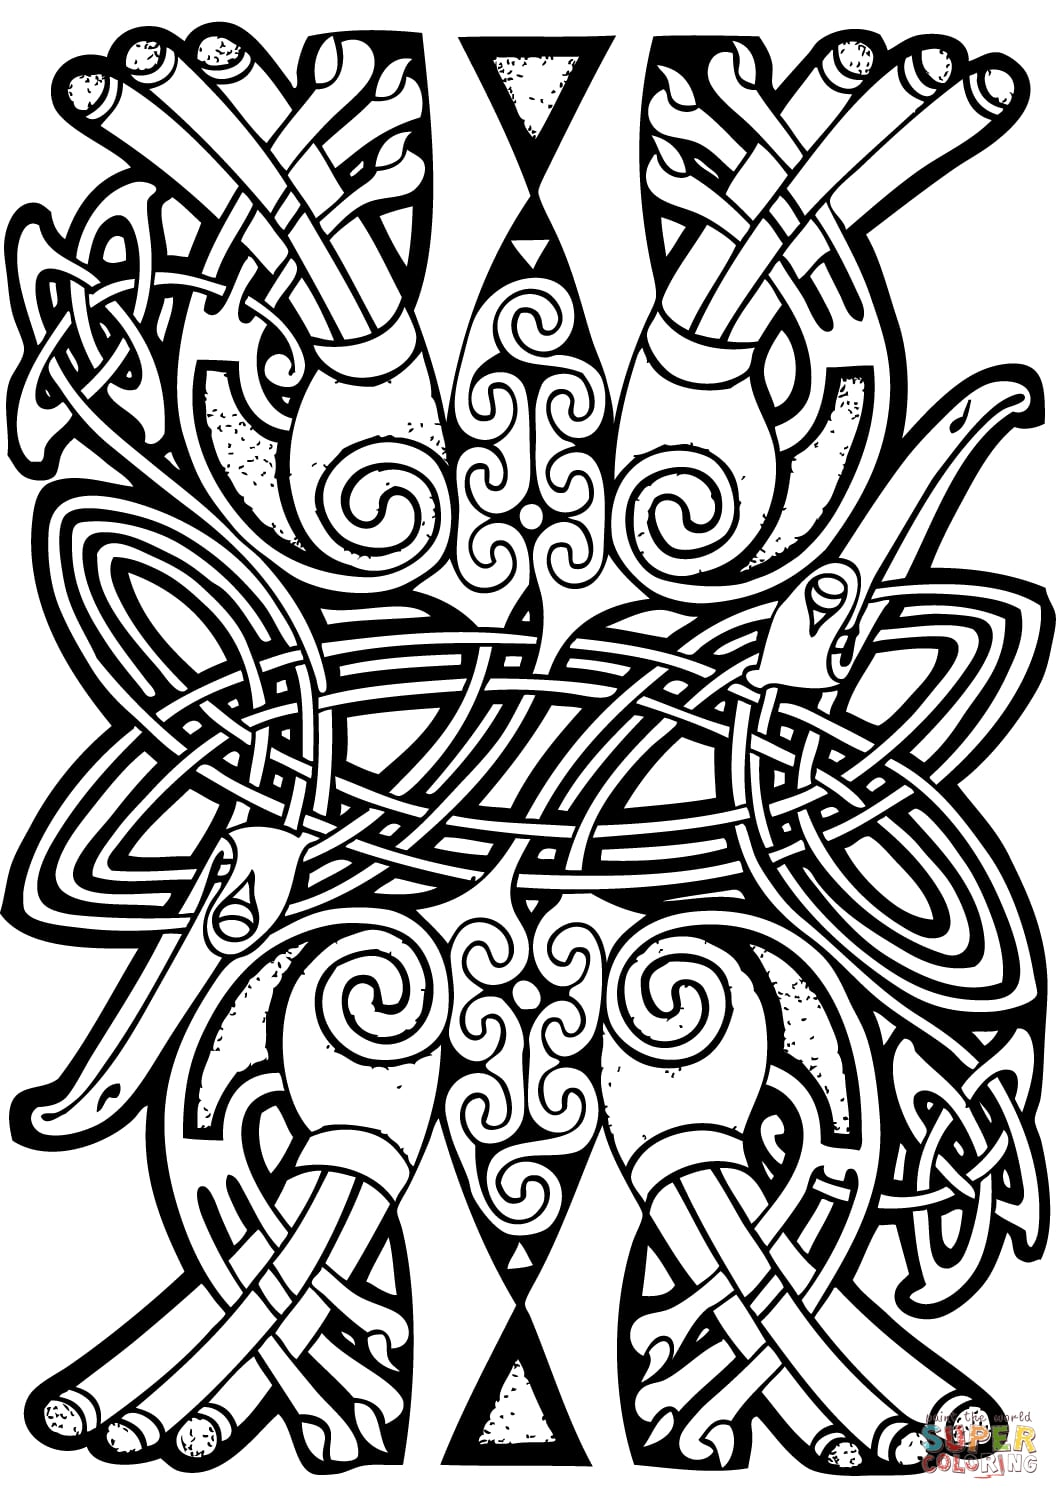 celtic drawings celtic cross drawing at paintingvalleycom explore celtic drawings